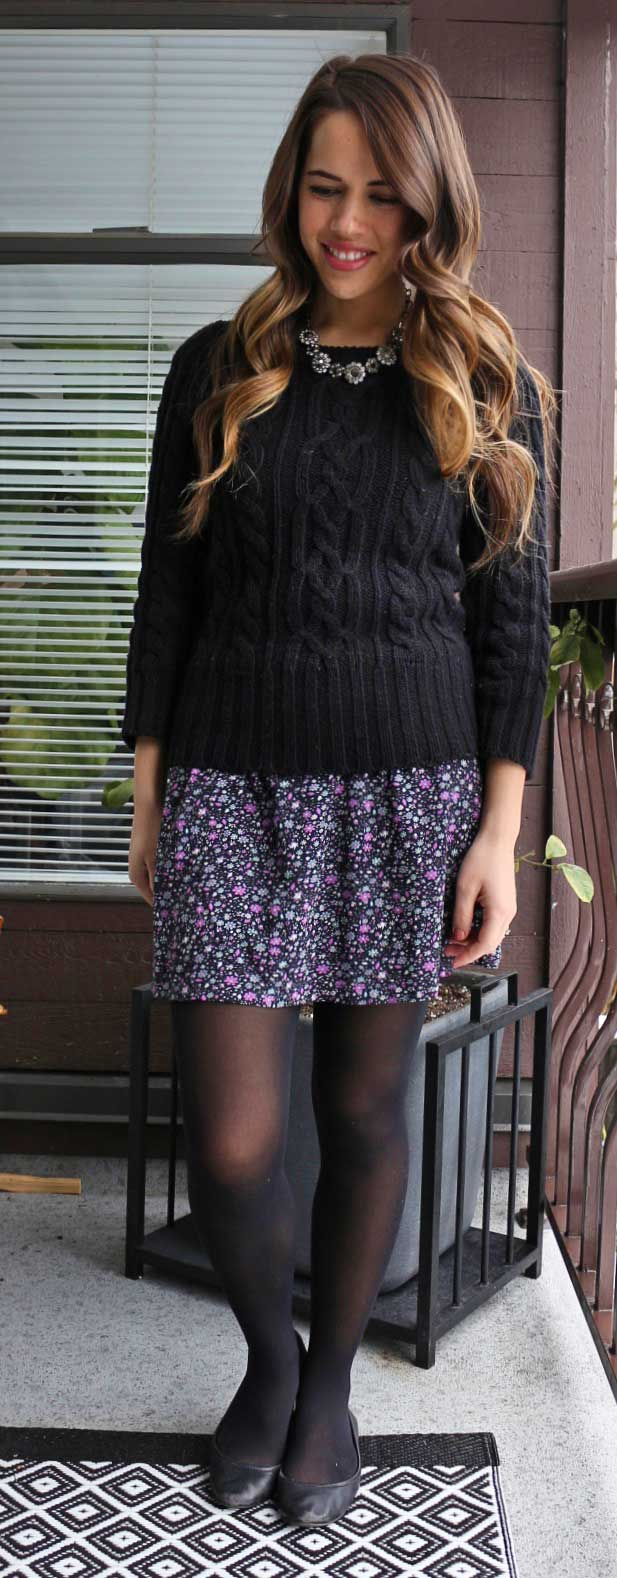 Jules in Flats - Forever 21 Floral Dress, Joe Fresh Cable Knit Sweater